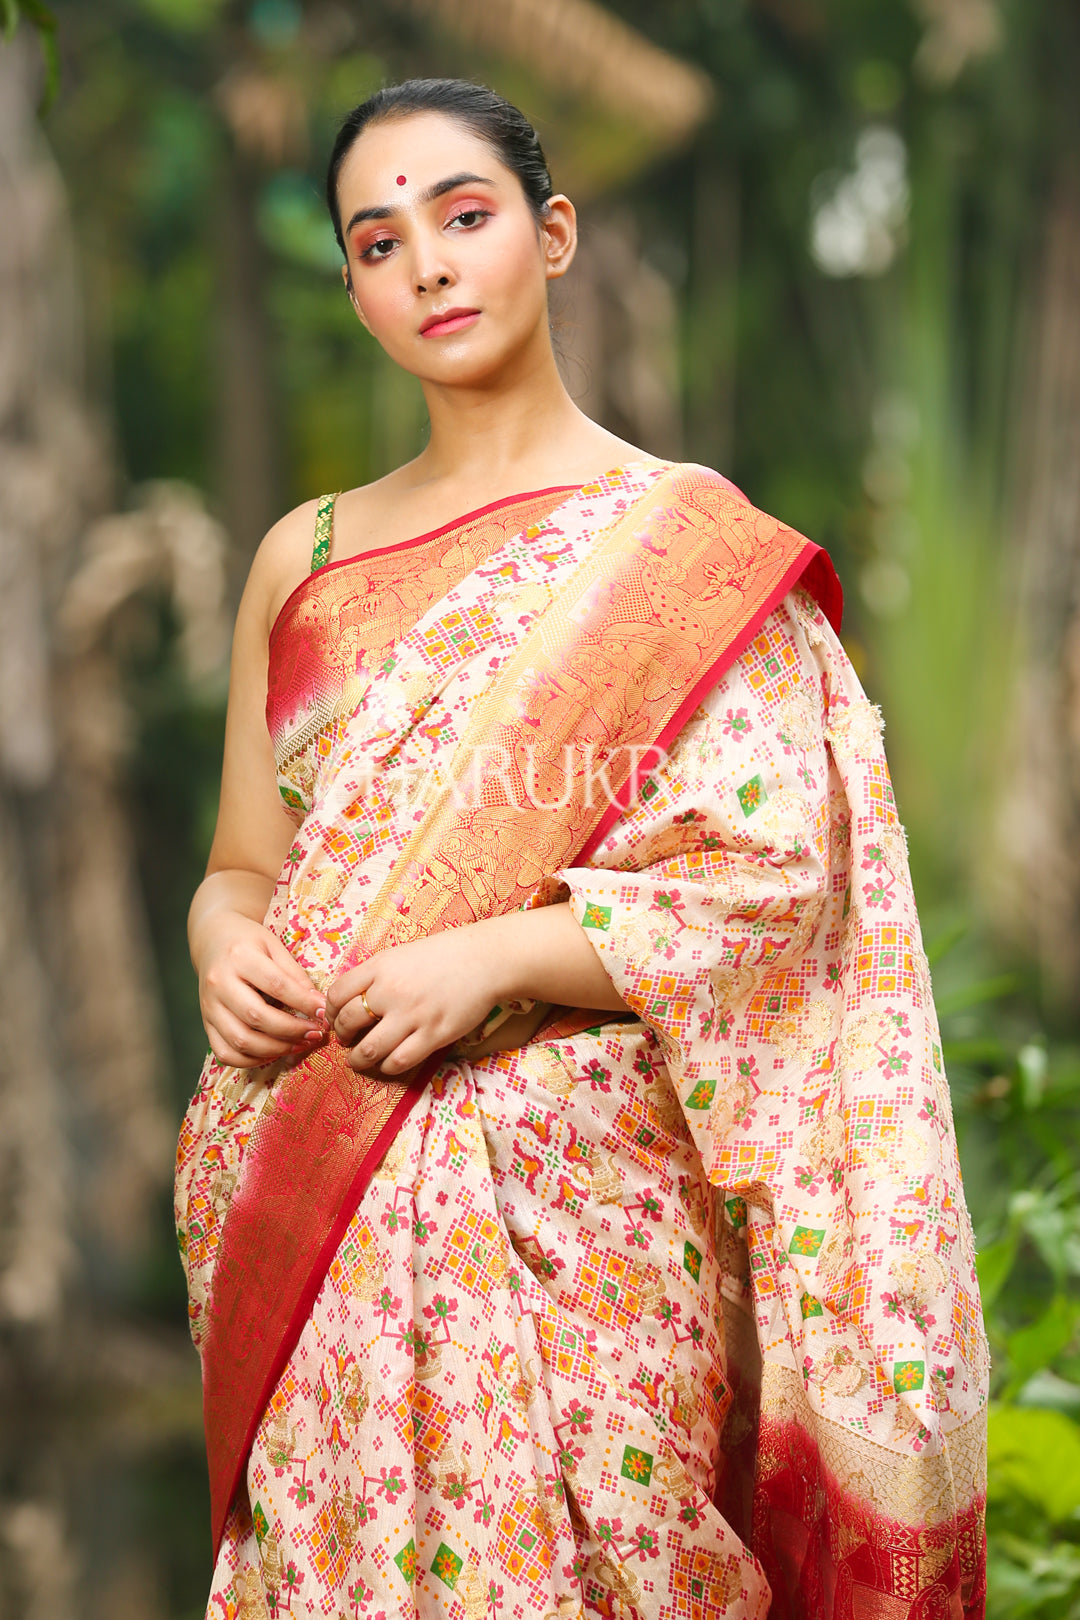 OFF-WHITE ABSTRACT WEAVED  DUPION SILK SAREE WITH RED ZARI BORDER AND PALLU